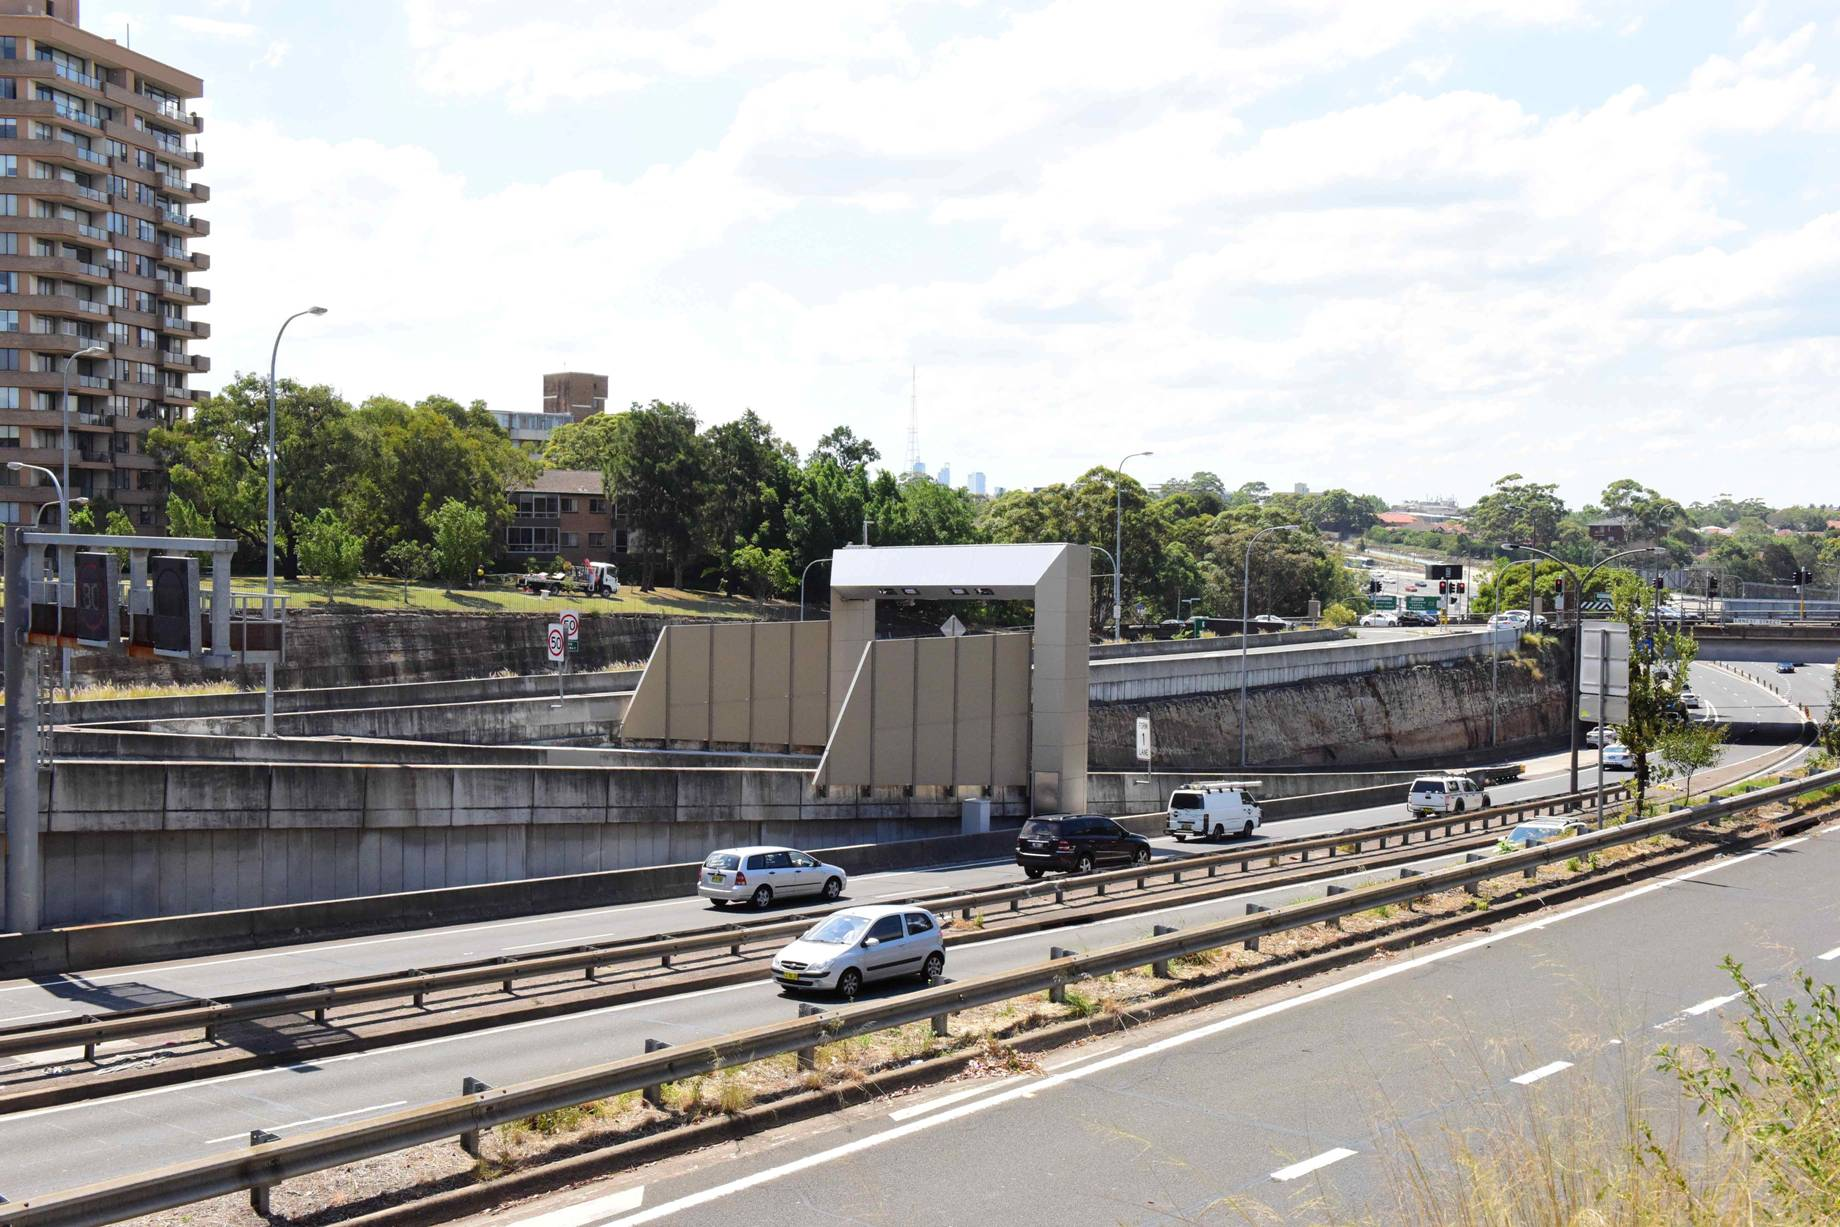 Studio Colin Polwarth Lane Cove Tunnel Toll Plaza (10).jpg